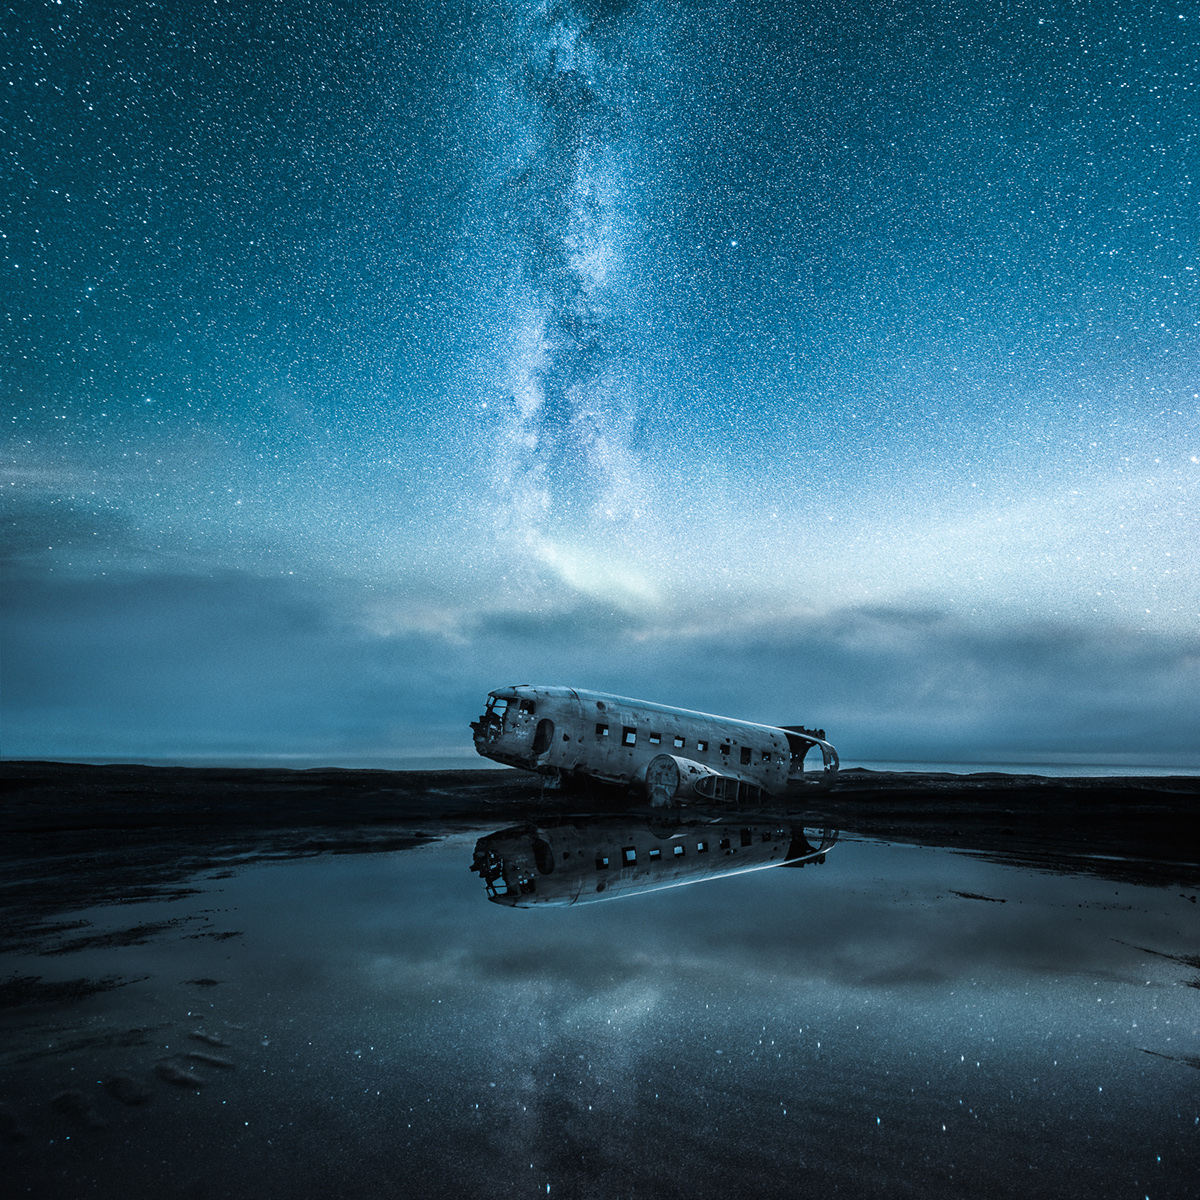 Mikko Lagerstedt - Invisible by day - 9